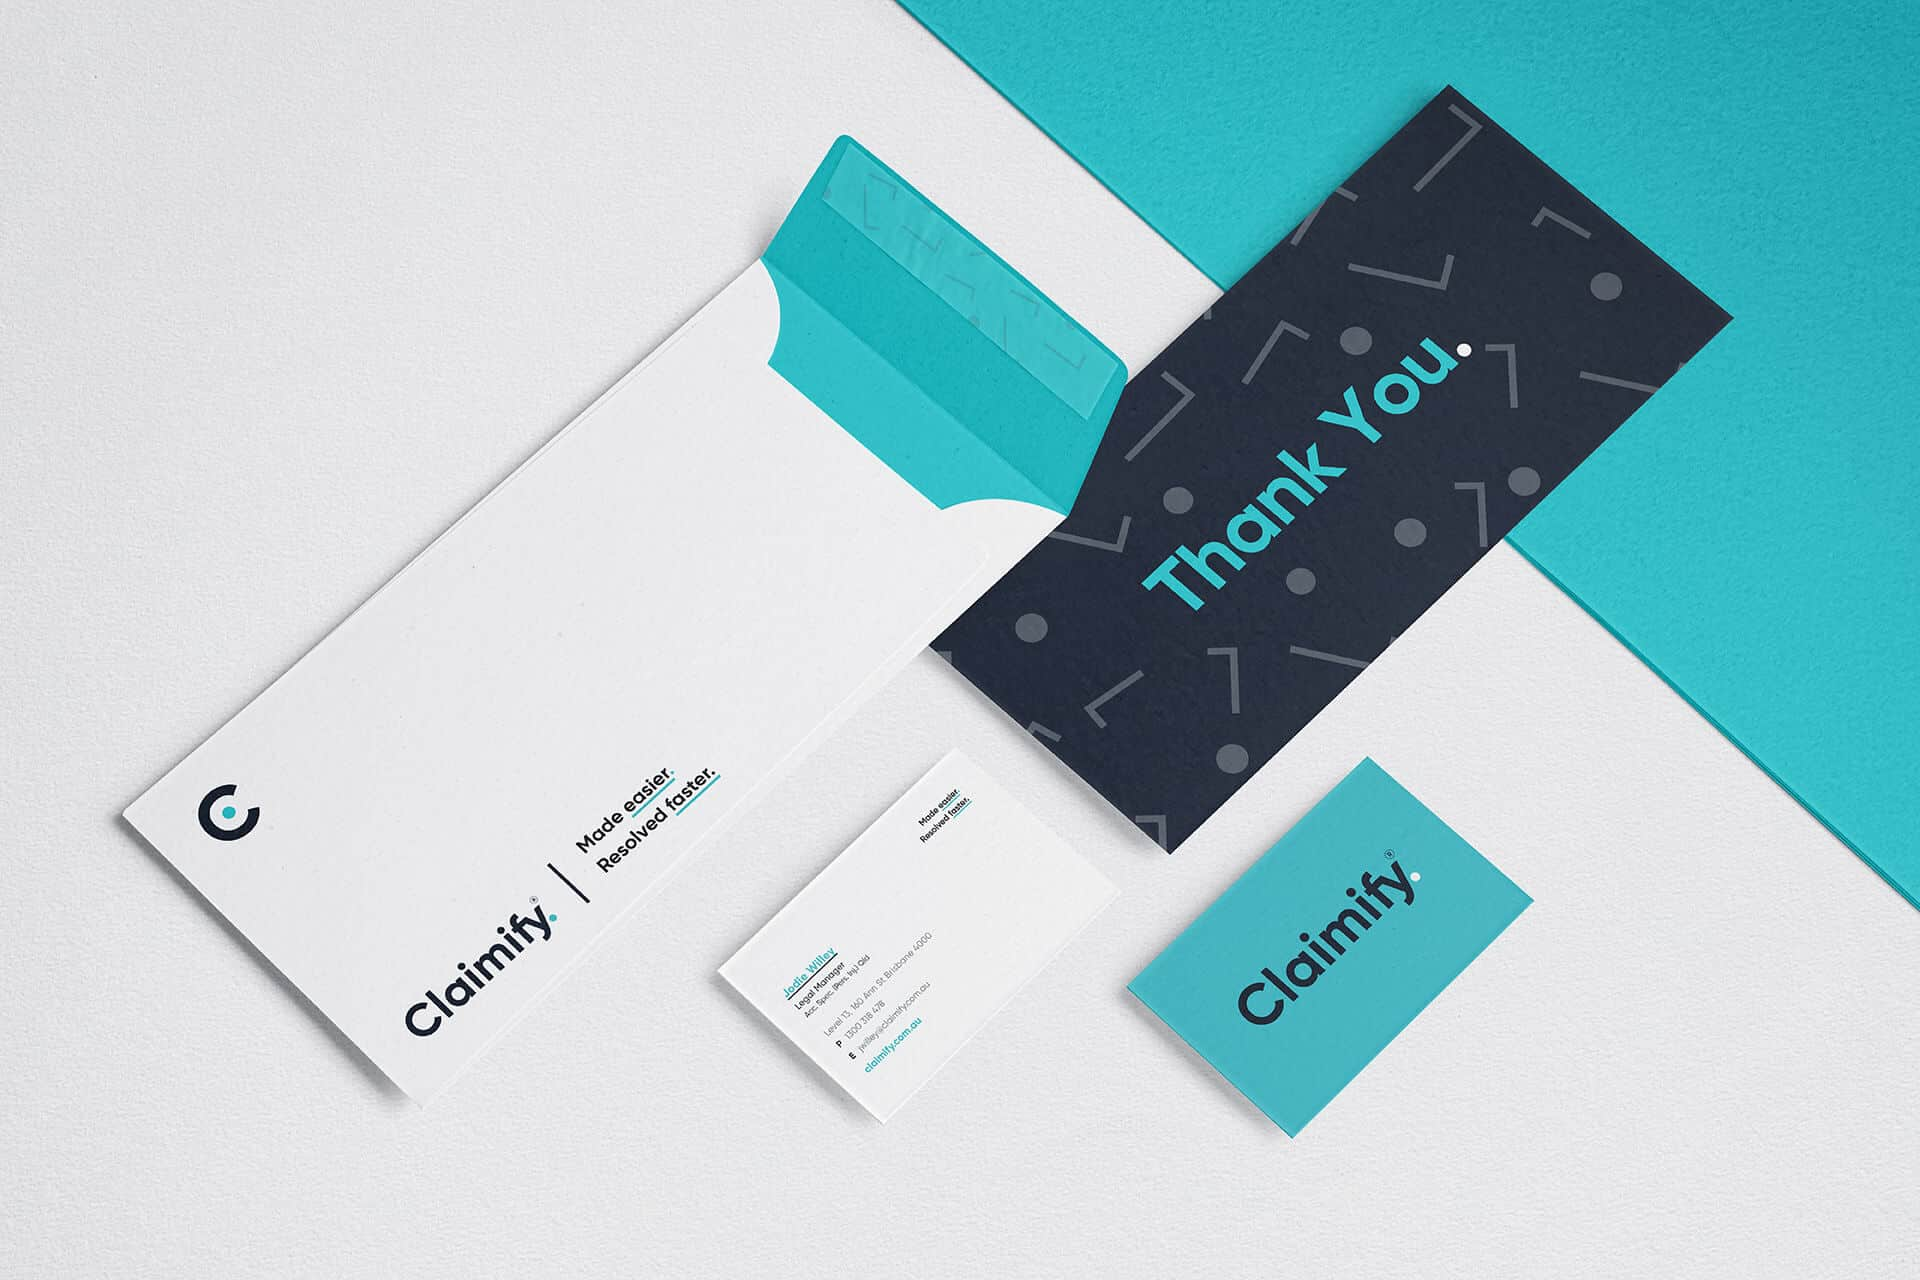 Claimify - Brand Design